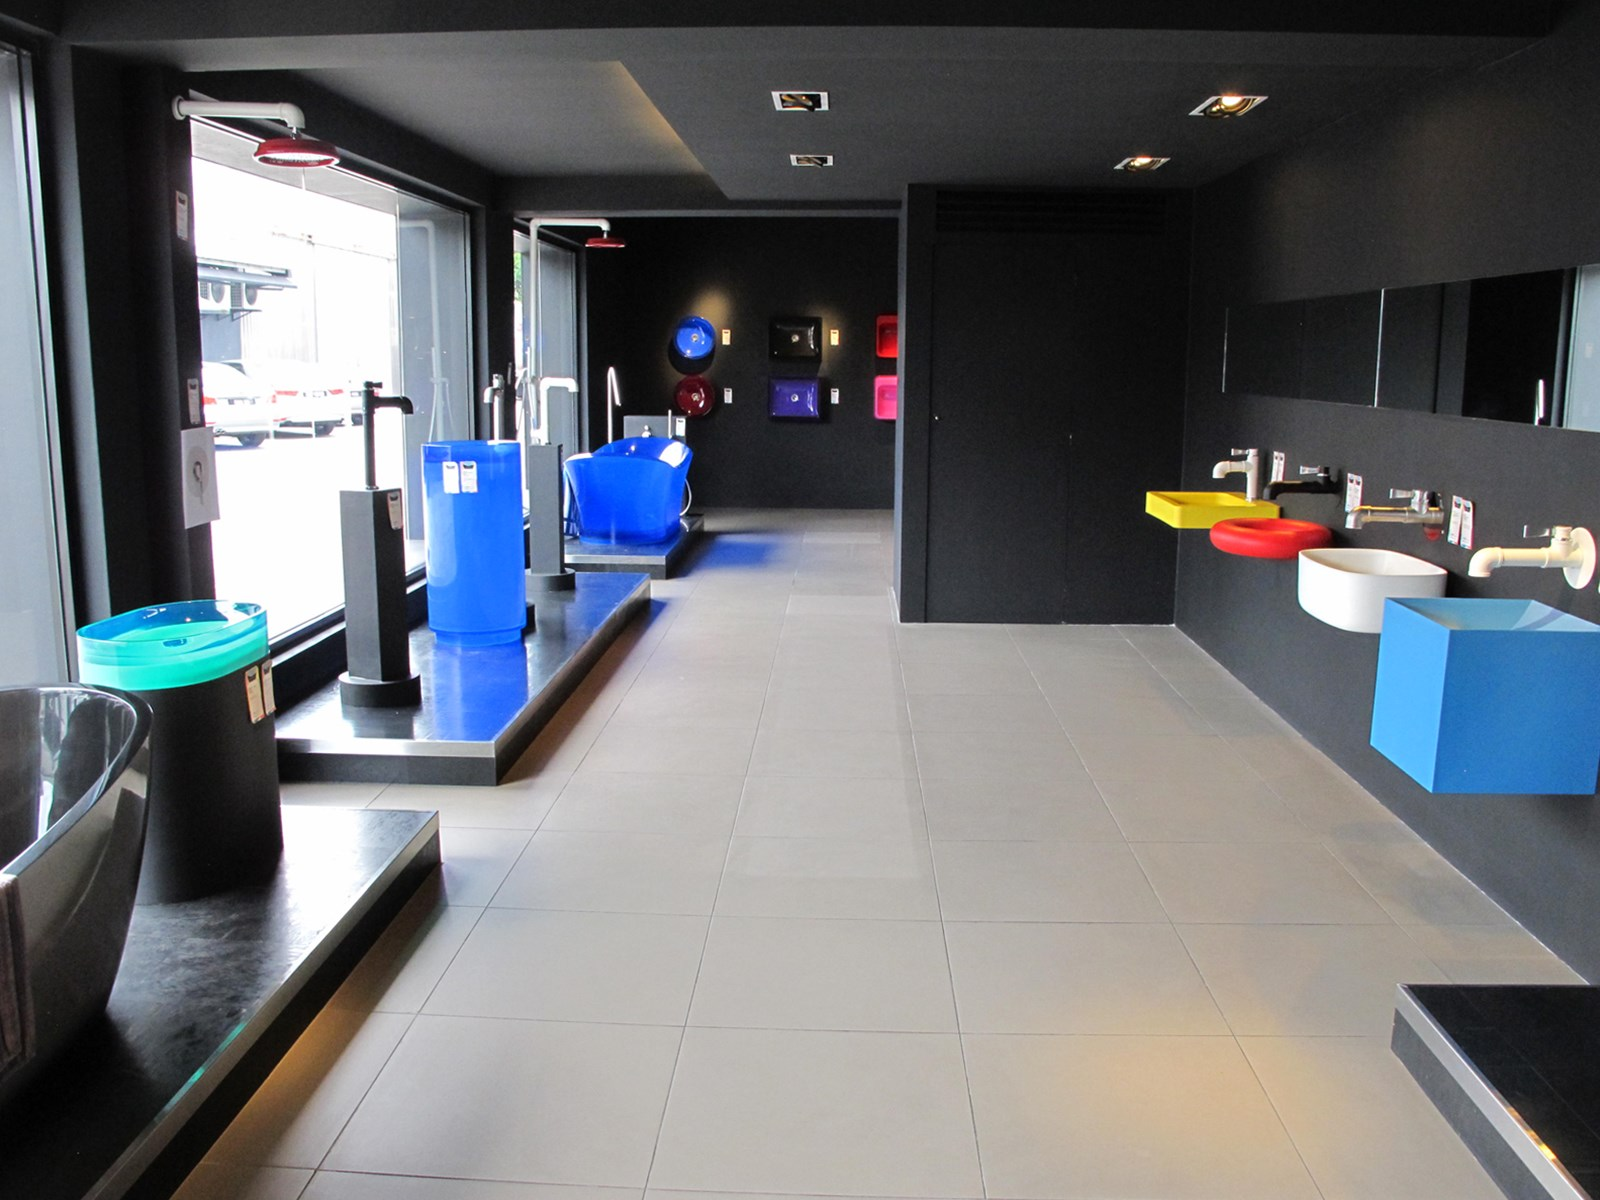 Innovative bathroom products in vibrant colours provide greater choice to suit individual styles.